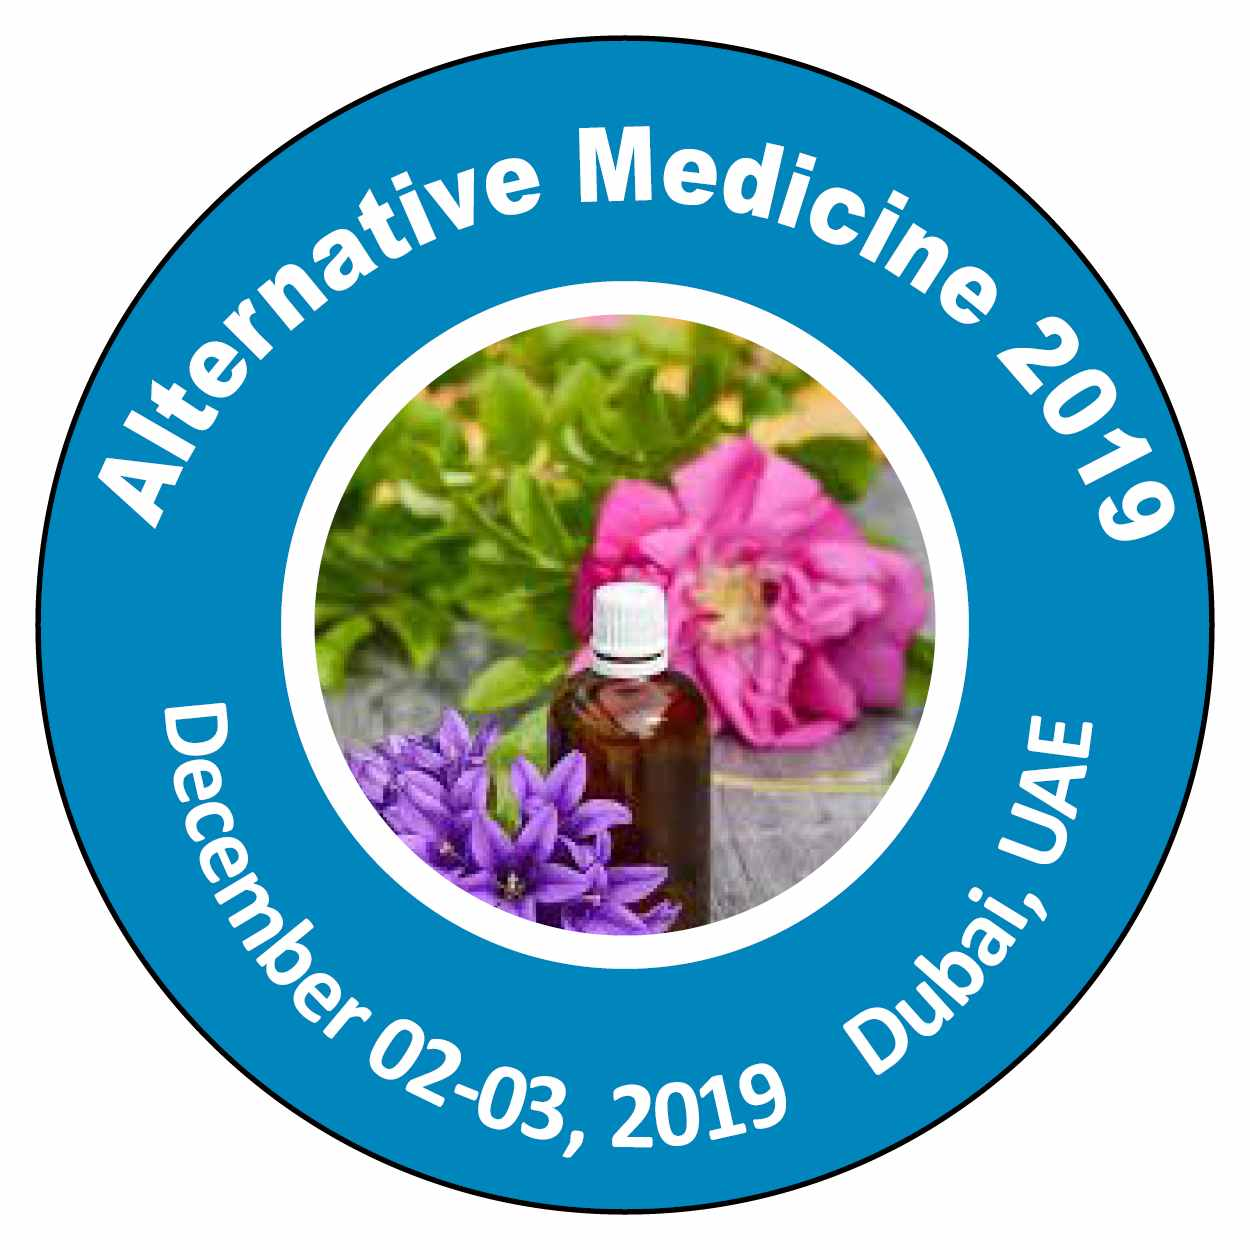 International Conference on Alternative Medicine , Traditional Medicine and Chinese Medicine